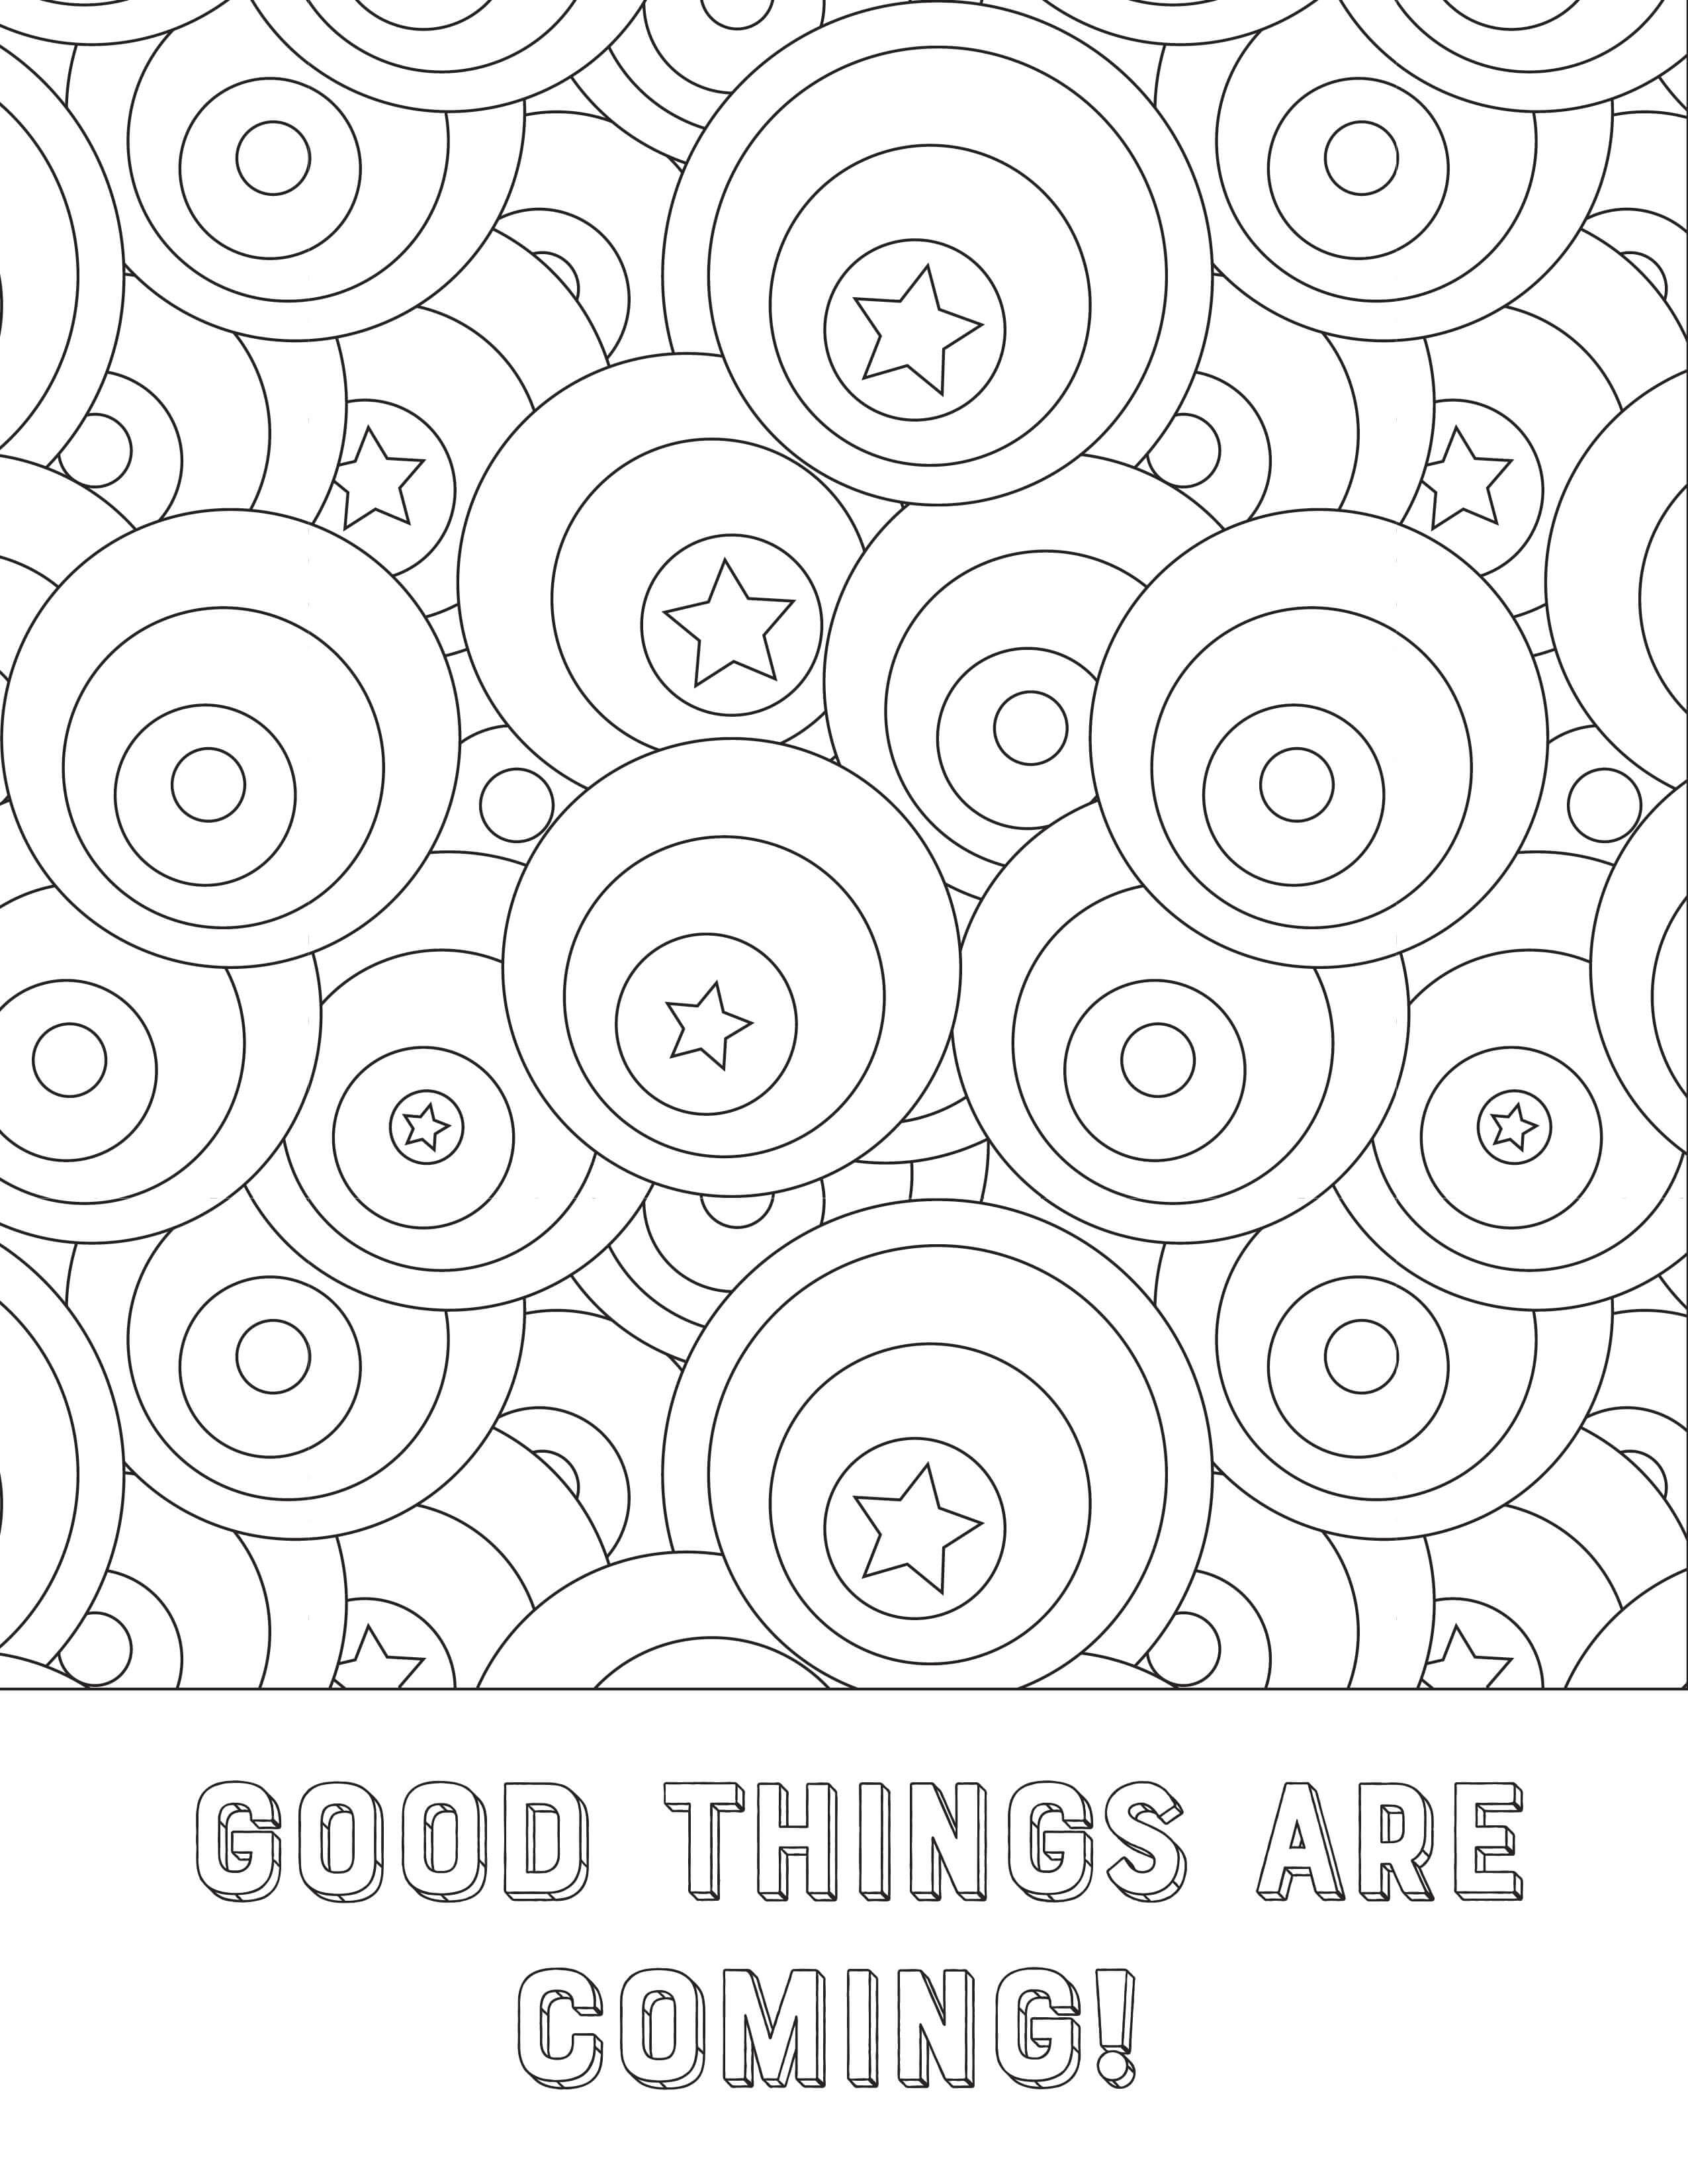 Free New Year Coloring Pages Www Teepeegirl Com